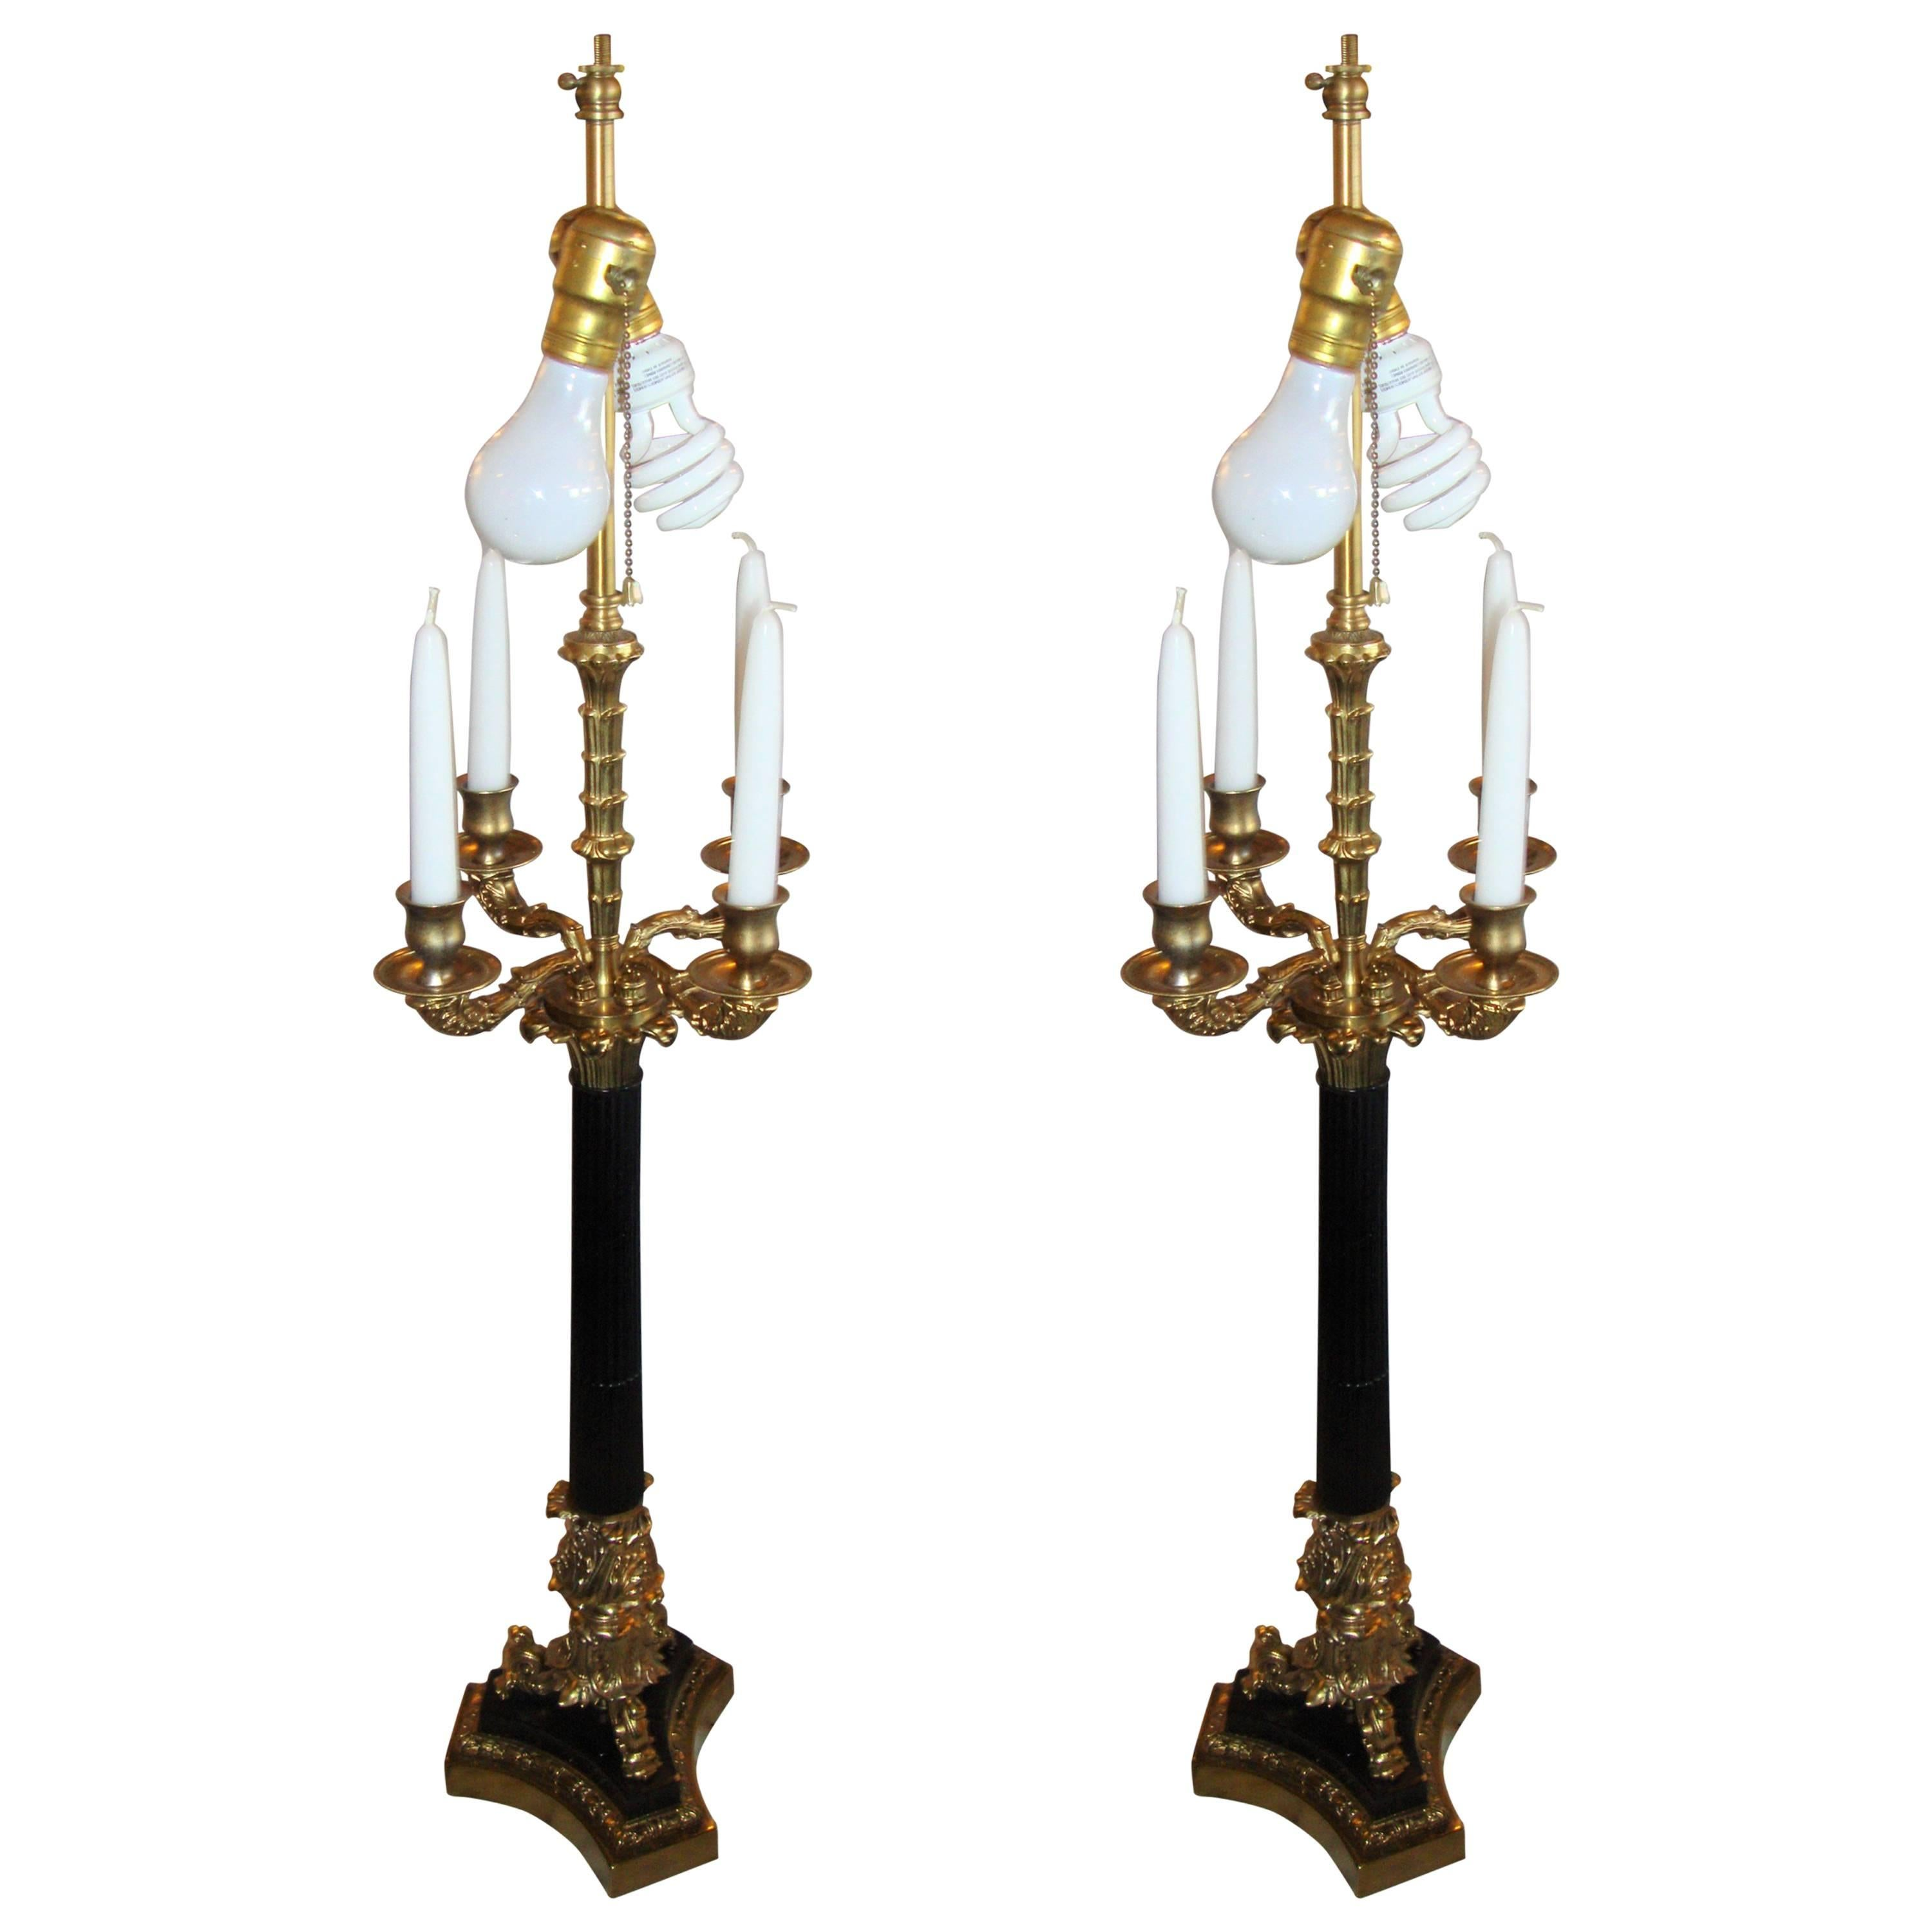 Pair of Bronze Neoclassical Style Table Lamps